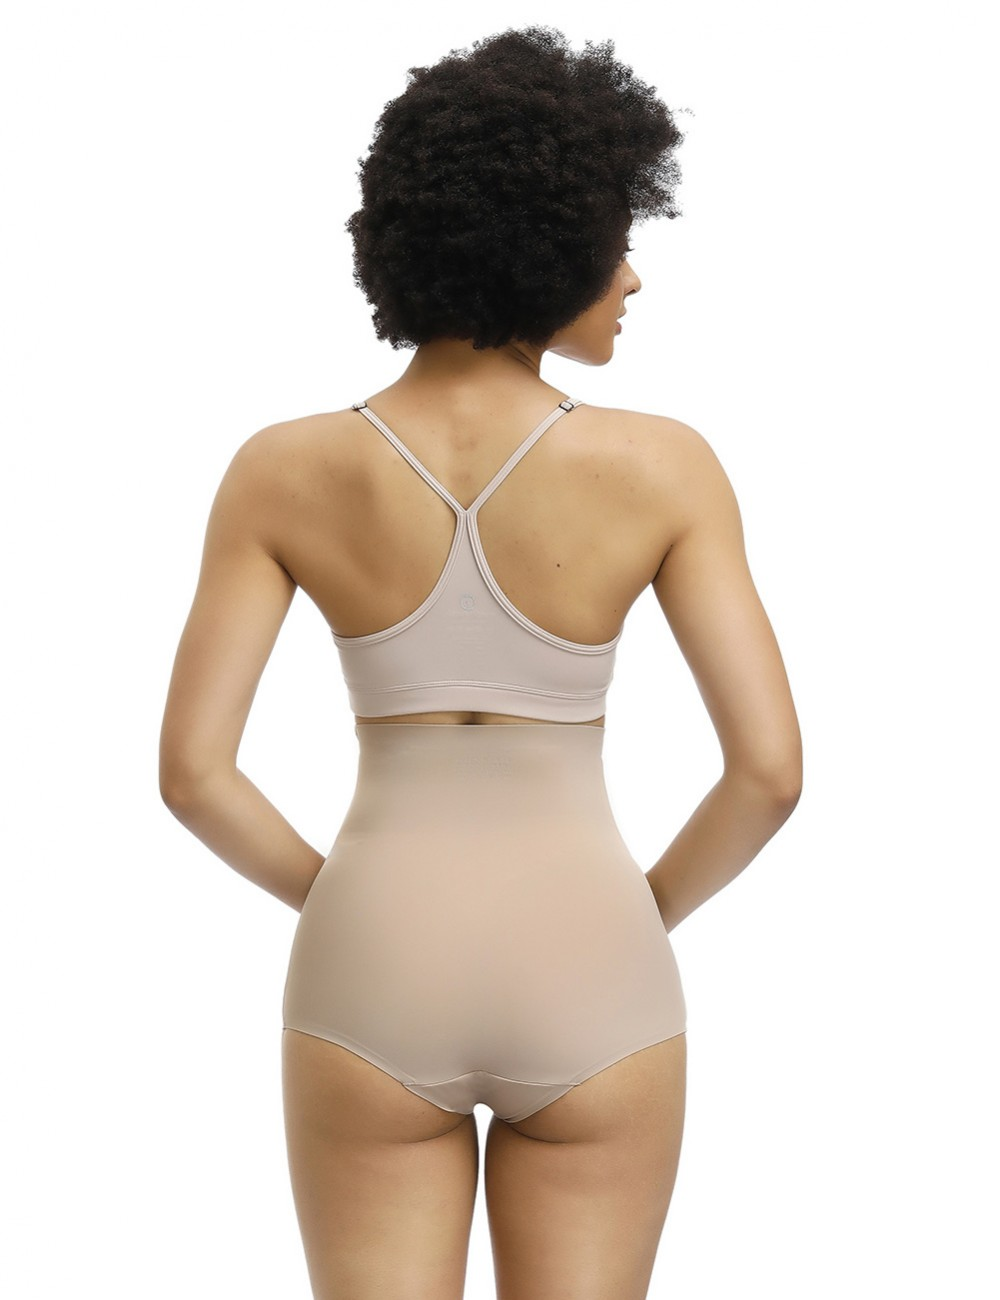 Skin High Rise Butt Enhancer Panty Solid Color Abdominal Control